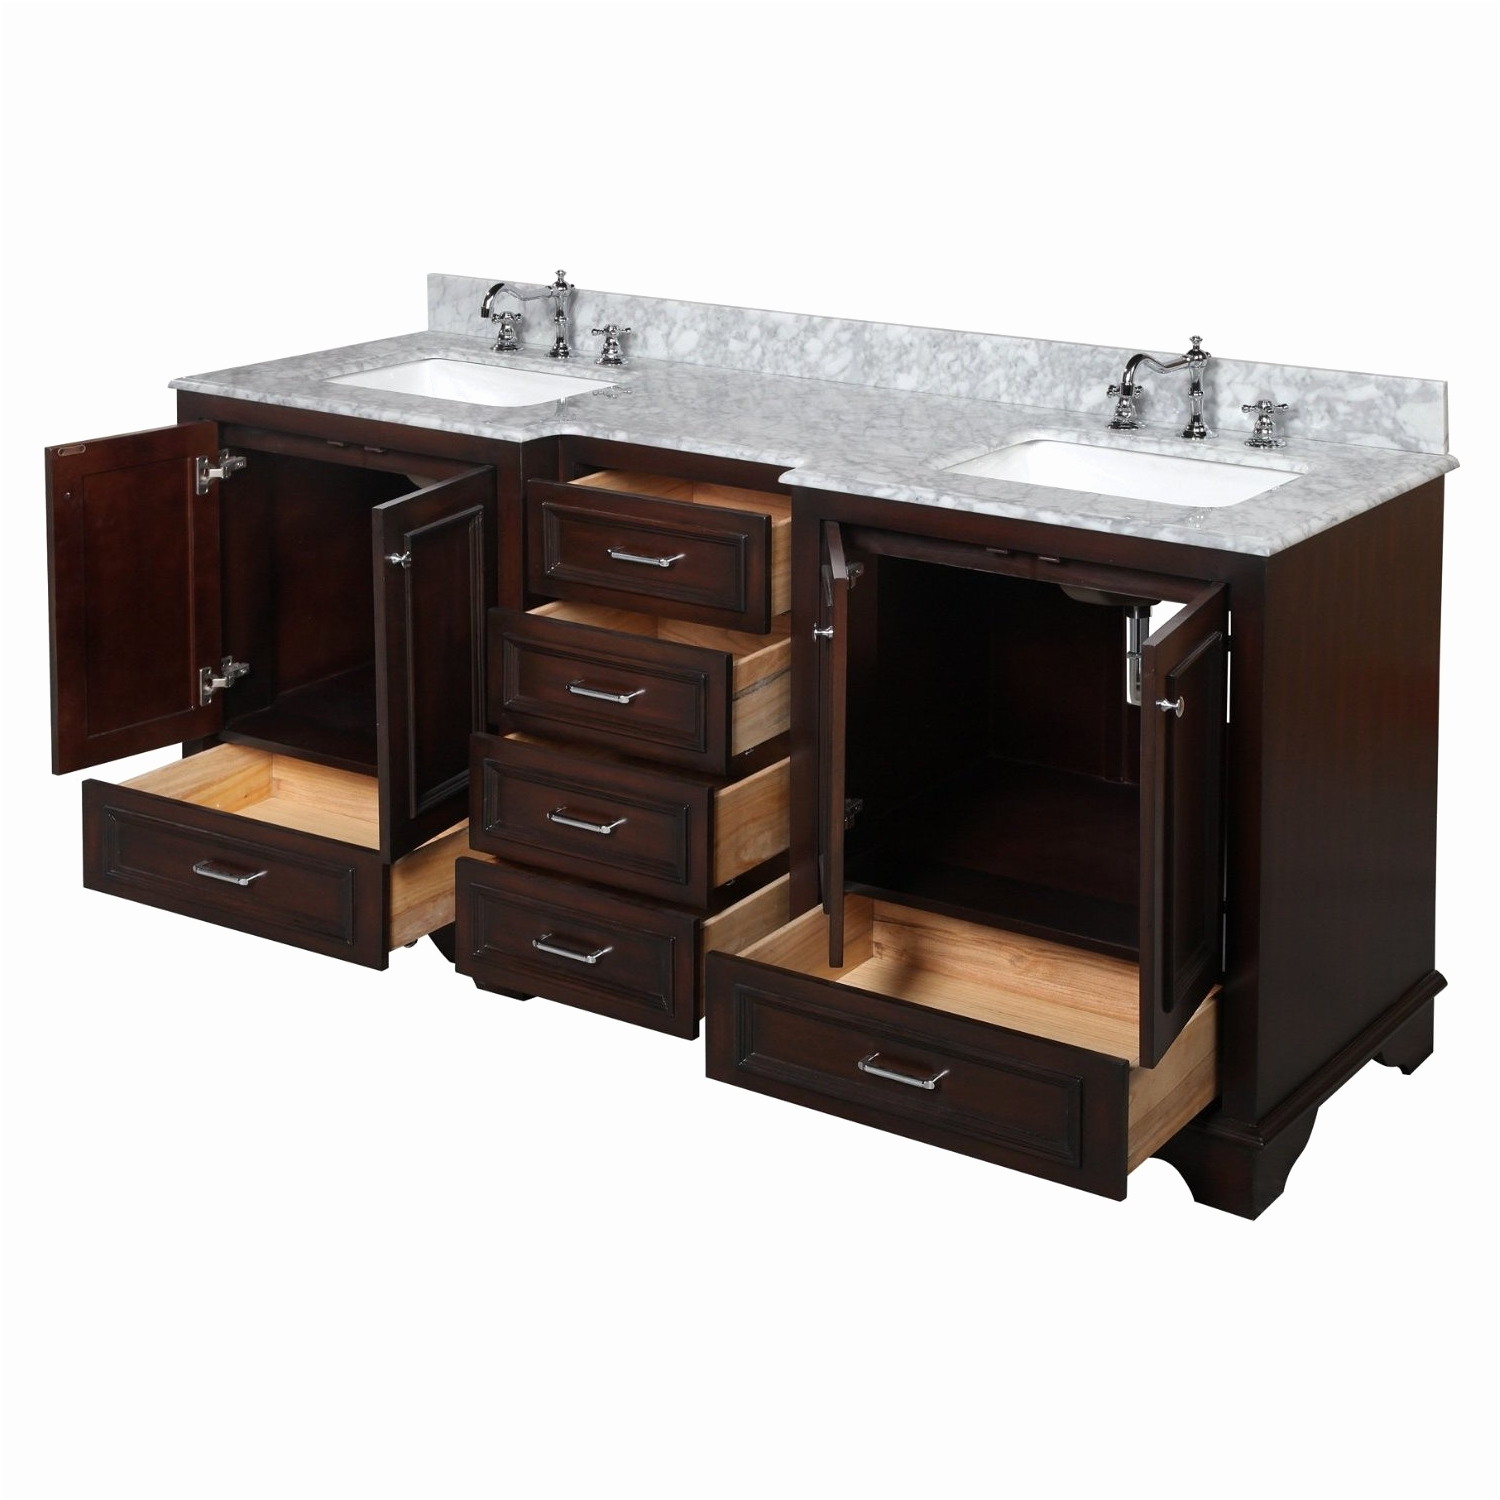 Vanity Home Depot | Home Depot Vanities with Granite Tops | Double Vanity Home Depot